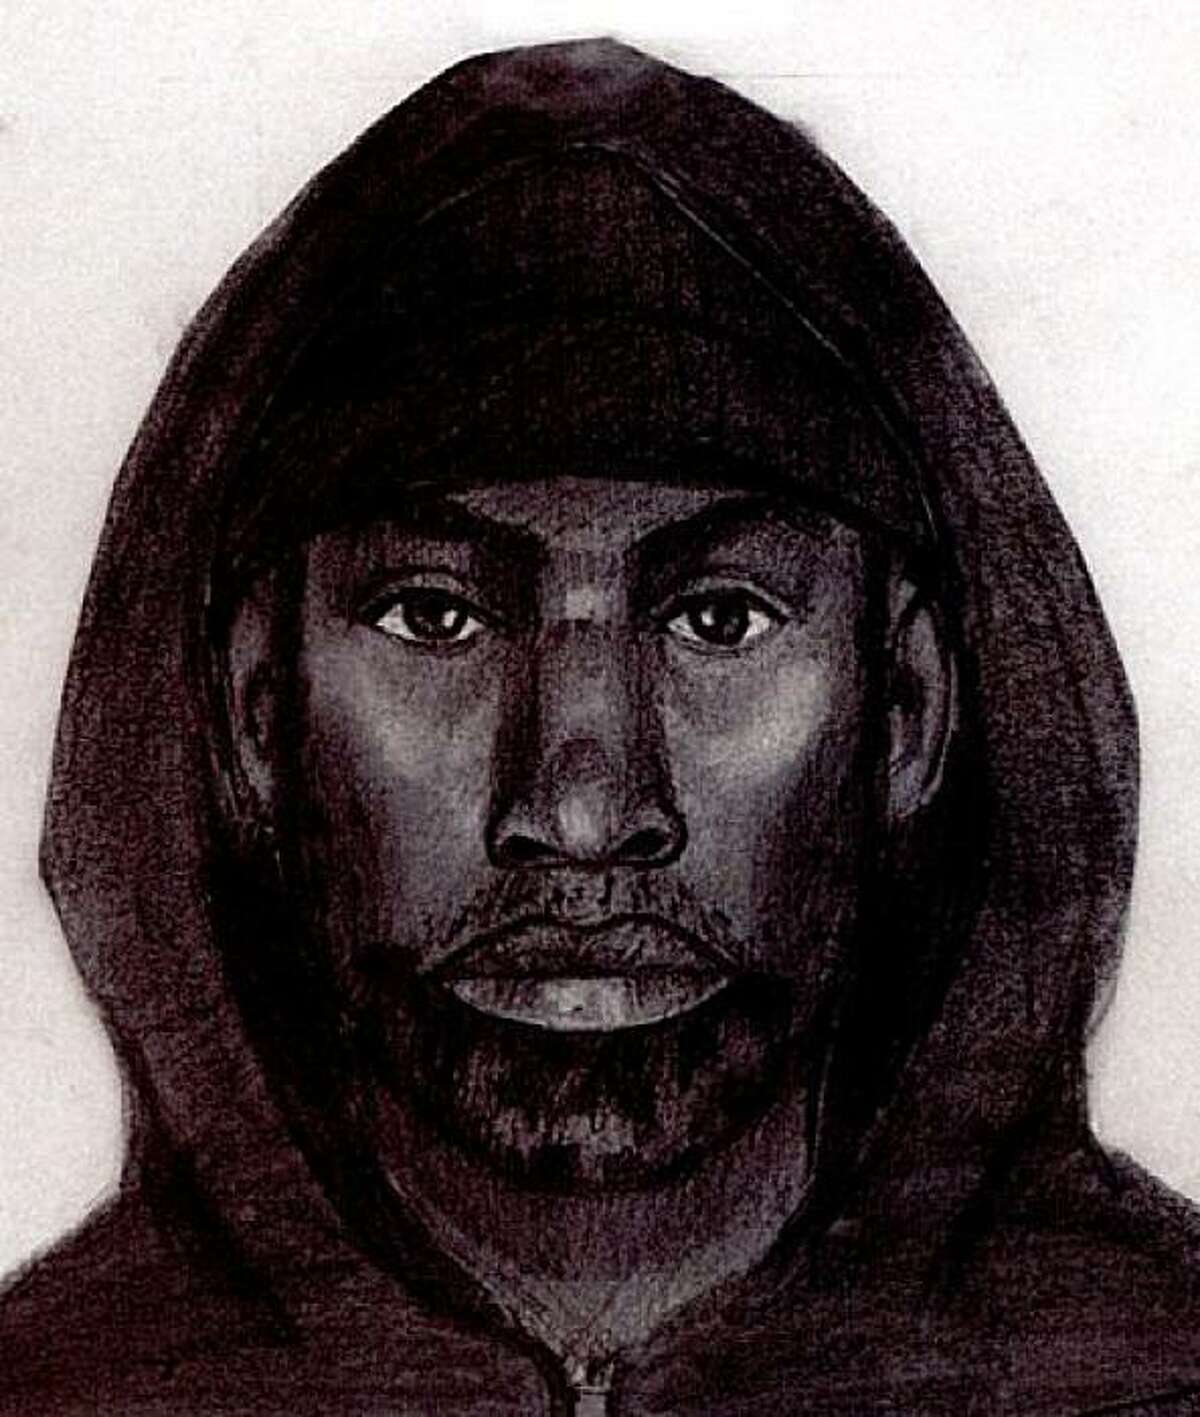 Undated police sketch of the suspect sought in the stabbing of 11-year-old Hatin Mansori on the Muni 49 Line outbound on 19th Street and Mission Street on Sept. 1, 2009.